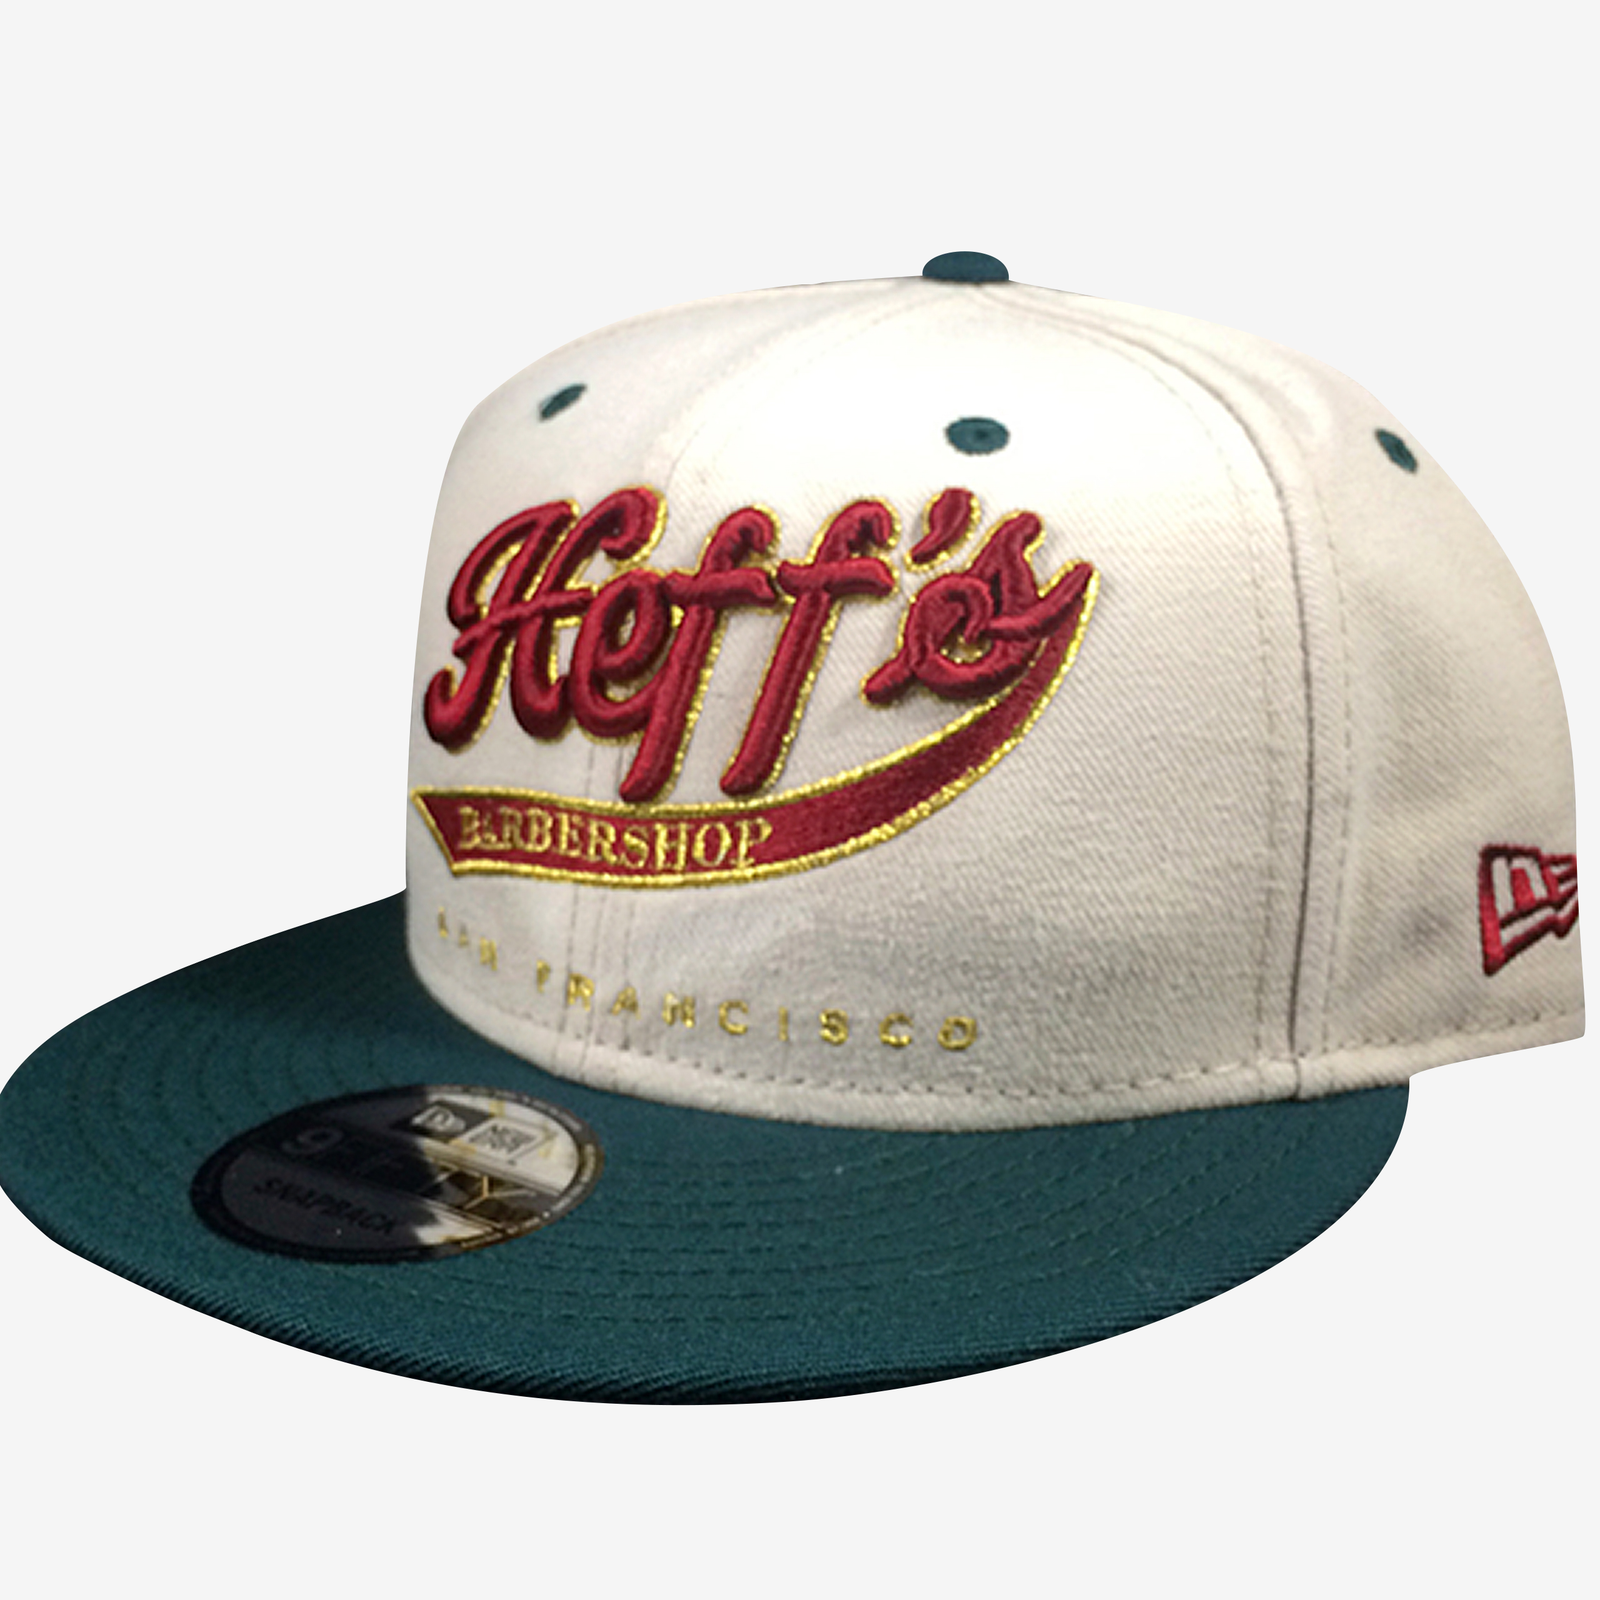 HEFFS BARBERSHOP New Era Snapback